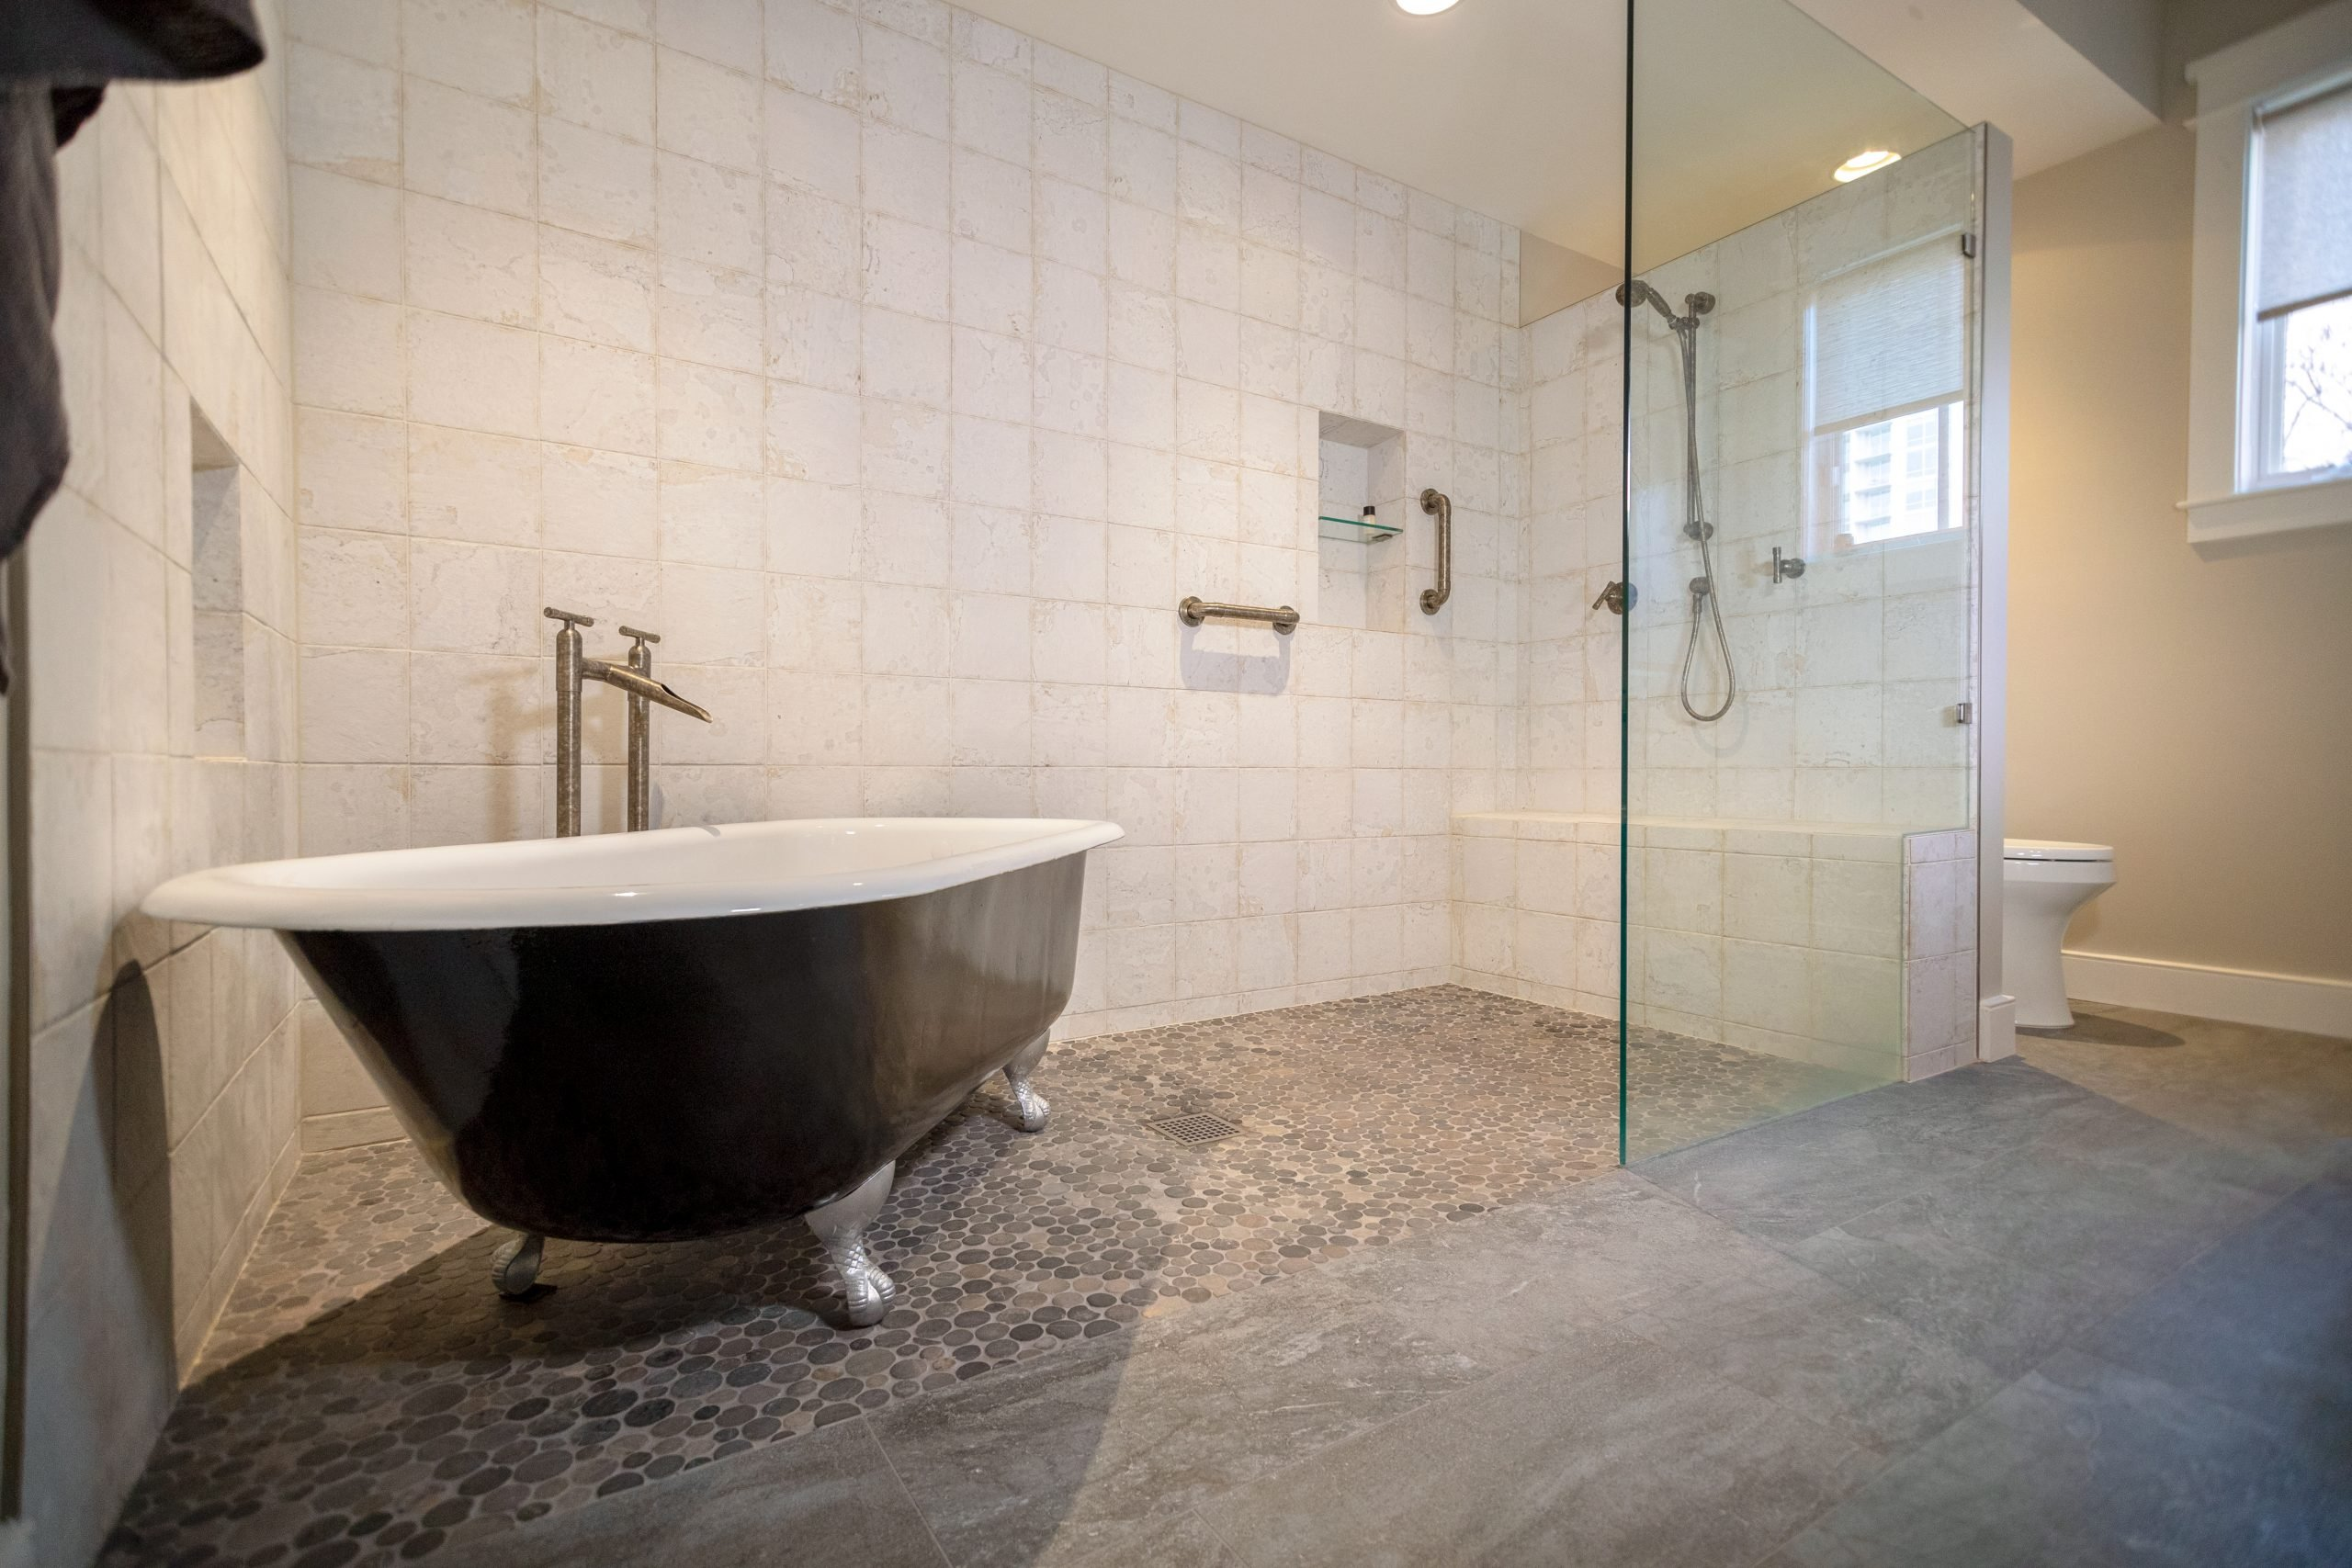 Large Zero Curb Shower with Claw Foot Tub